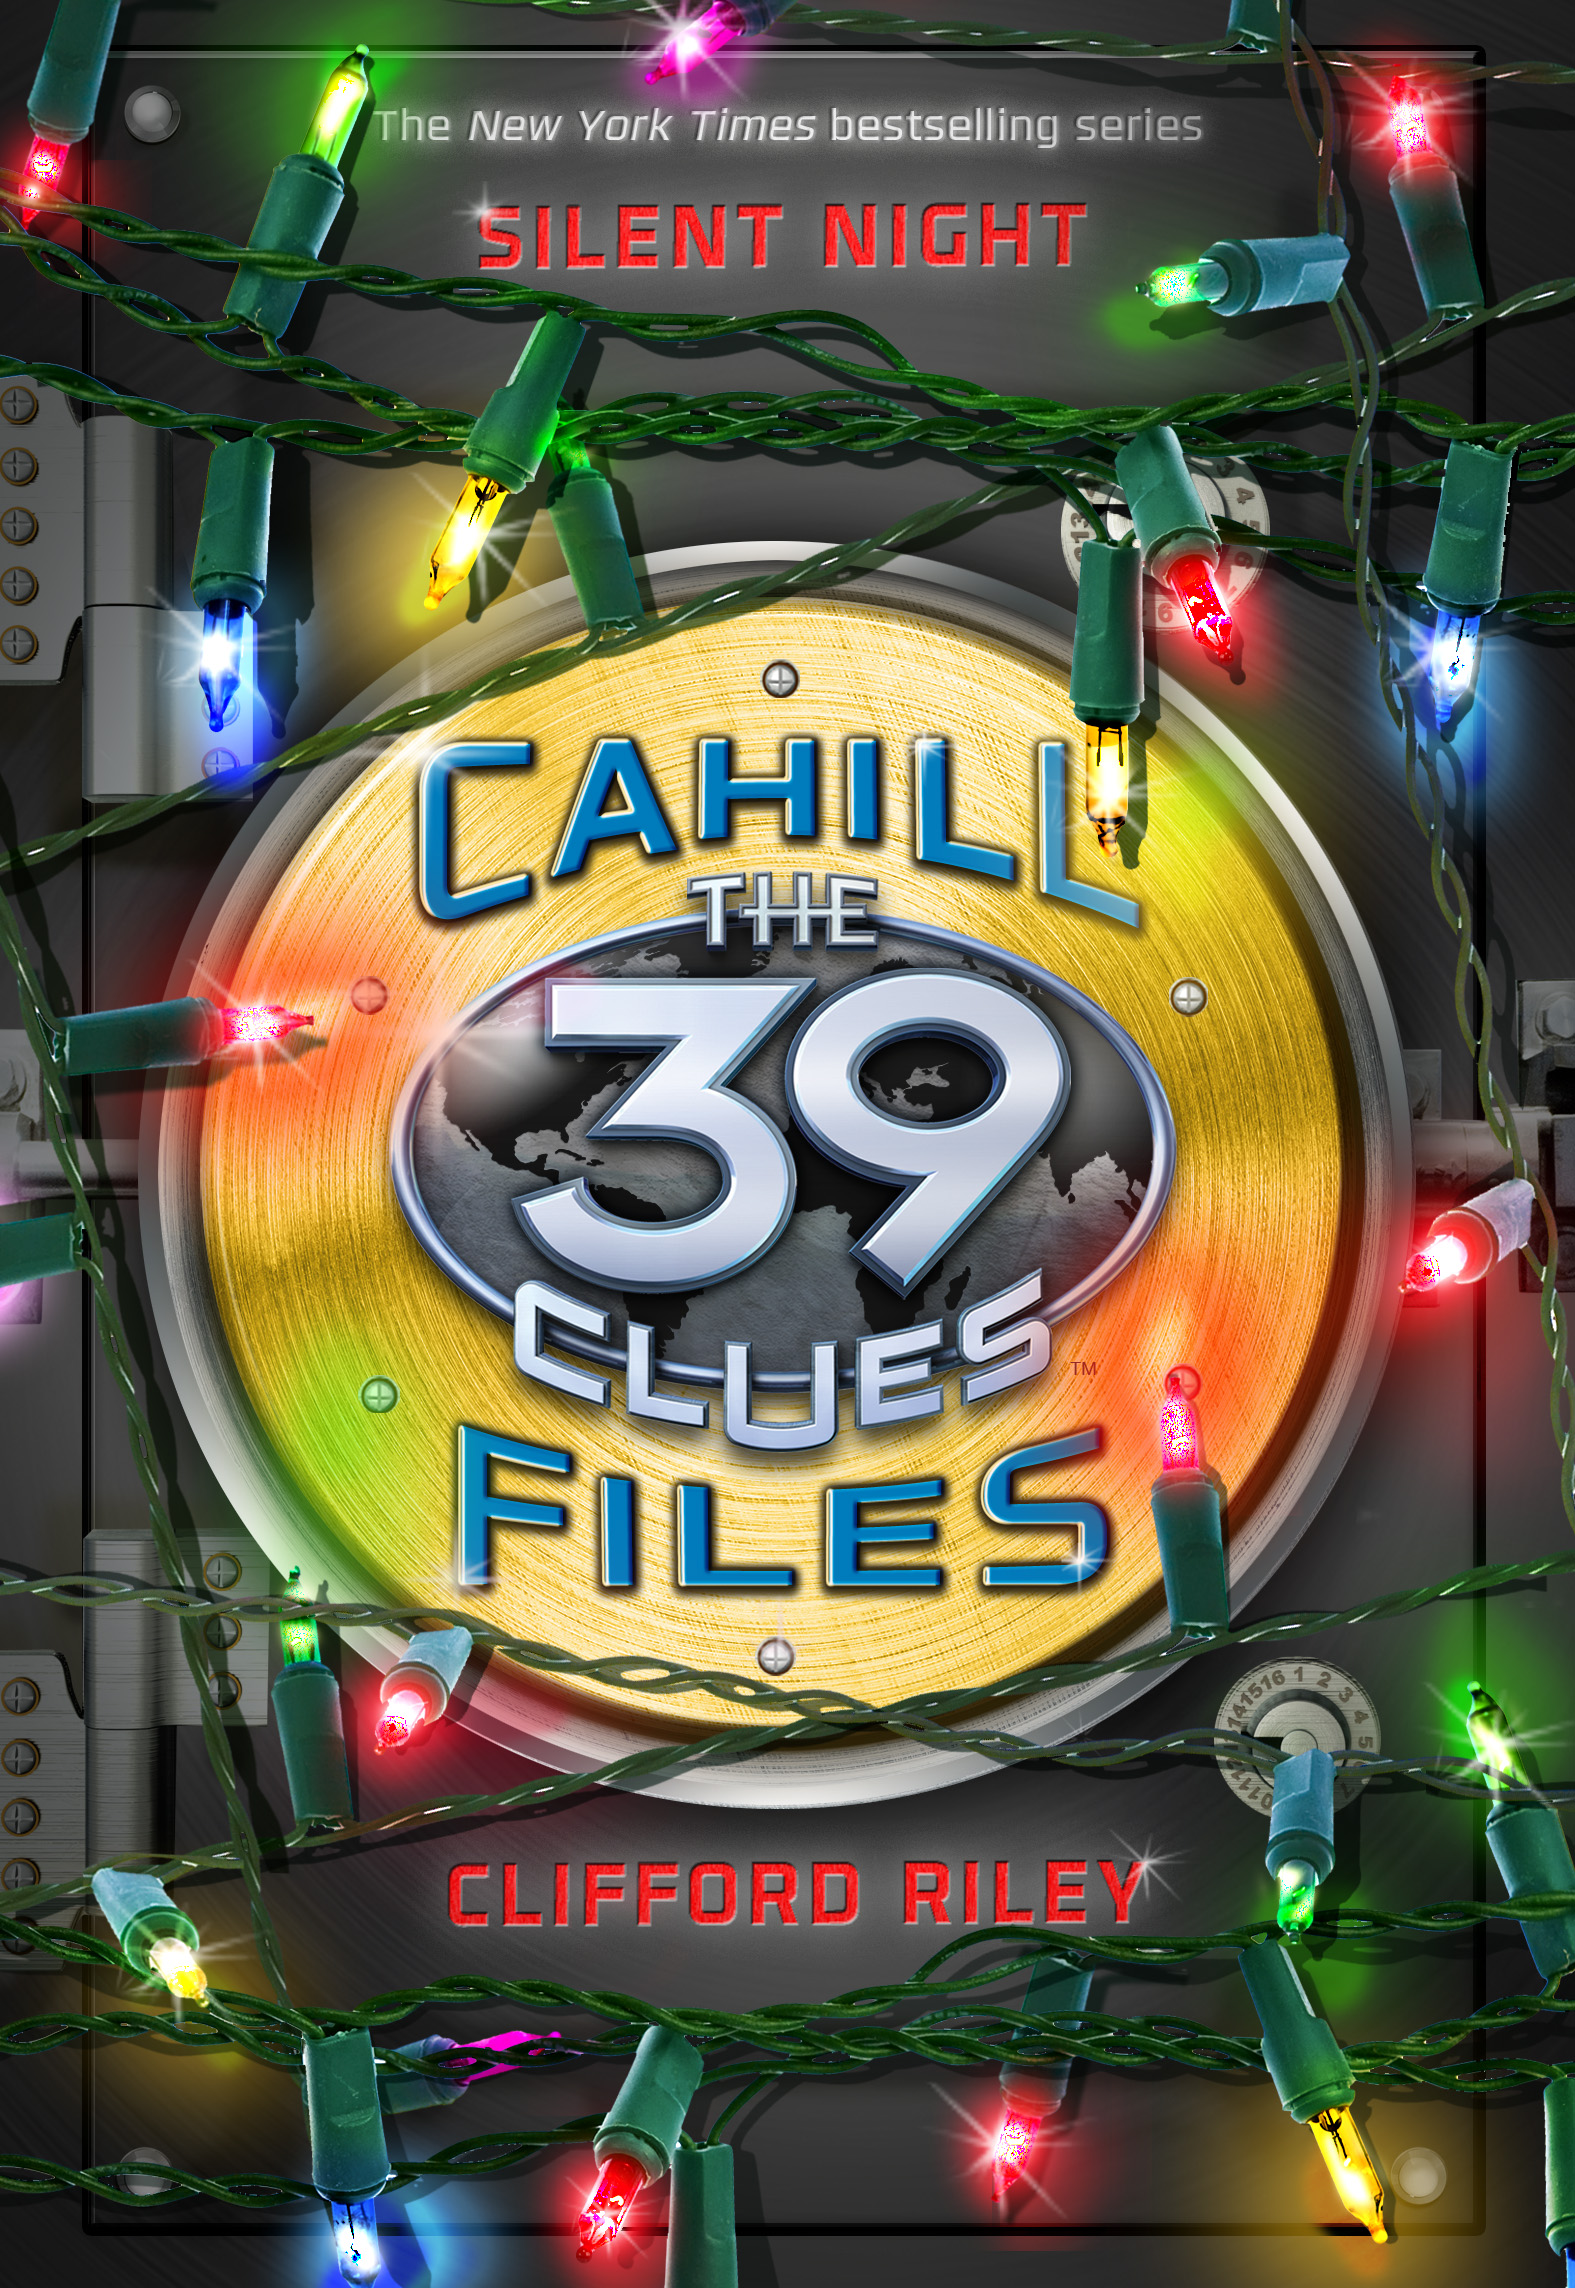 Operation Trinity 39 Clues: The Cahill Files, Book 1